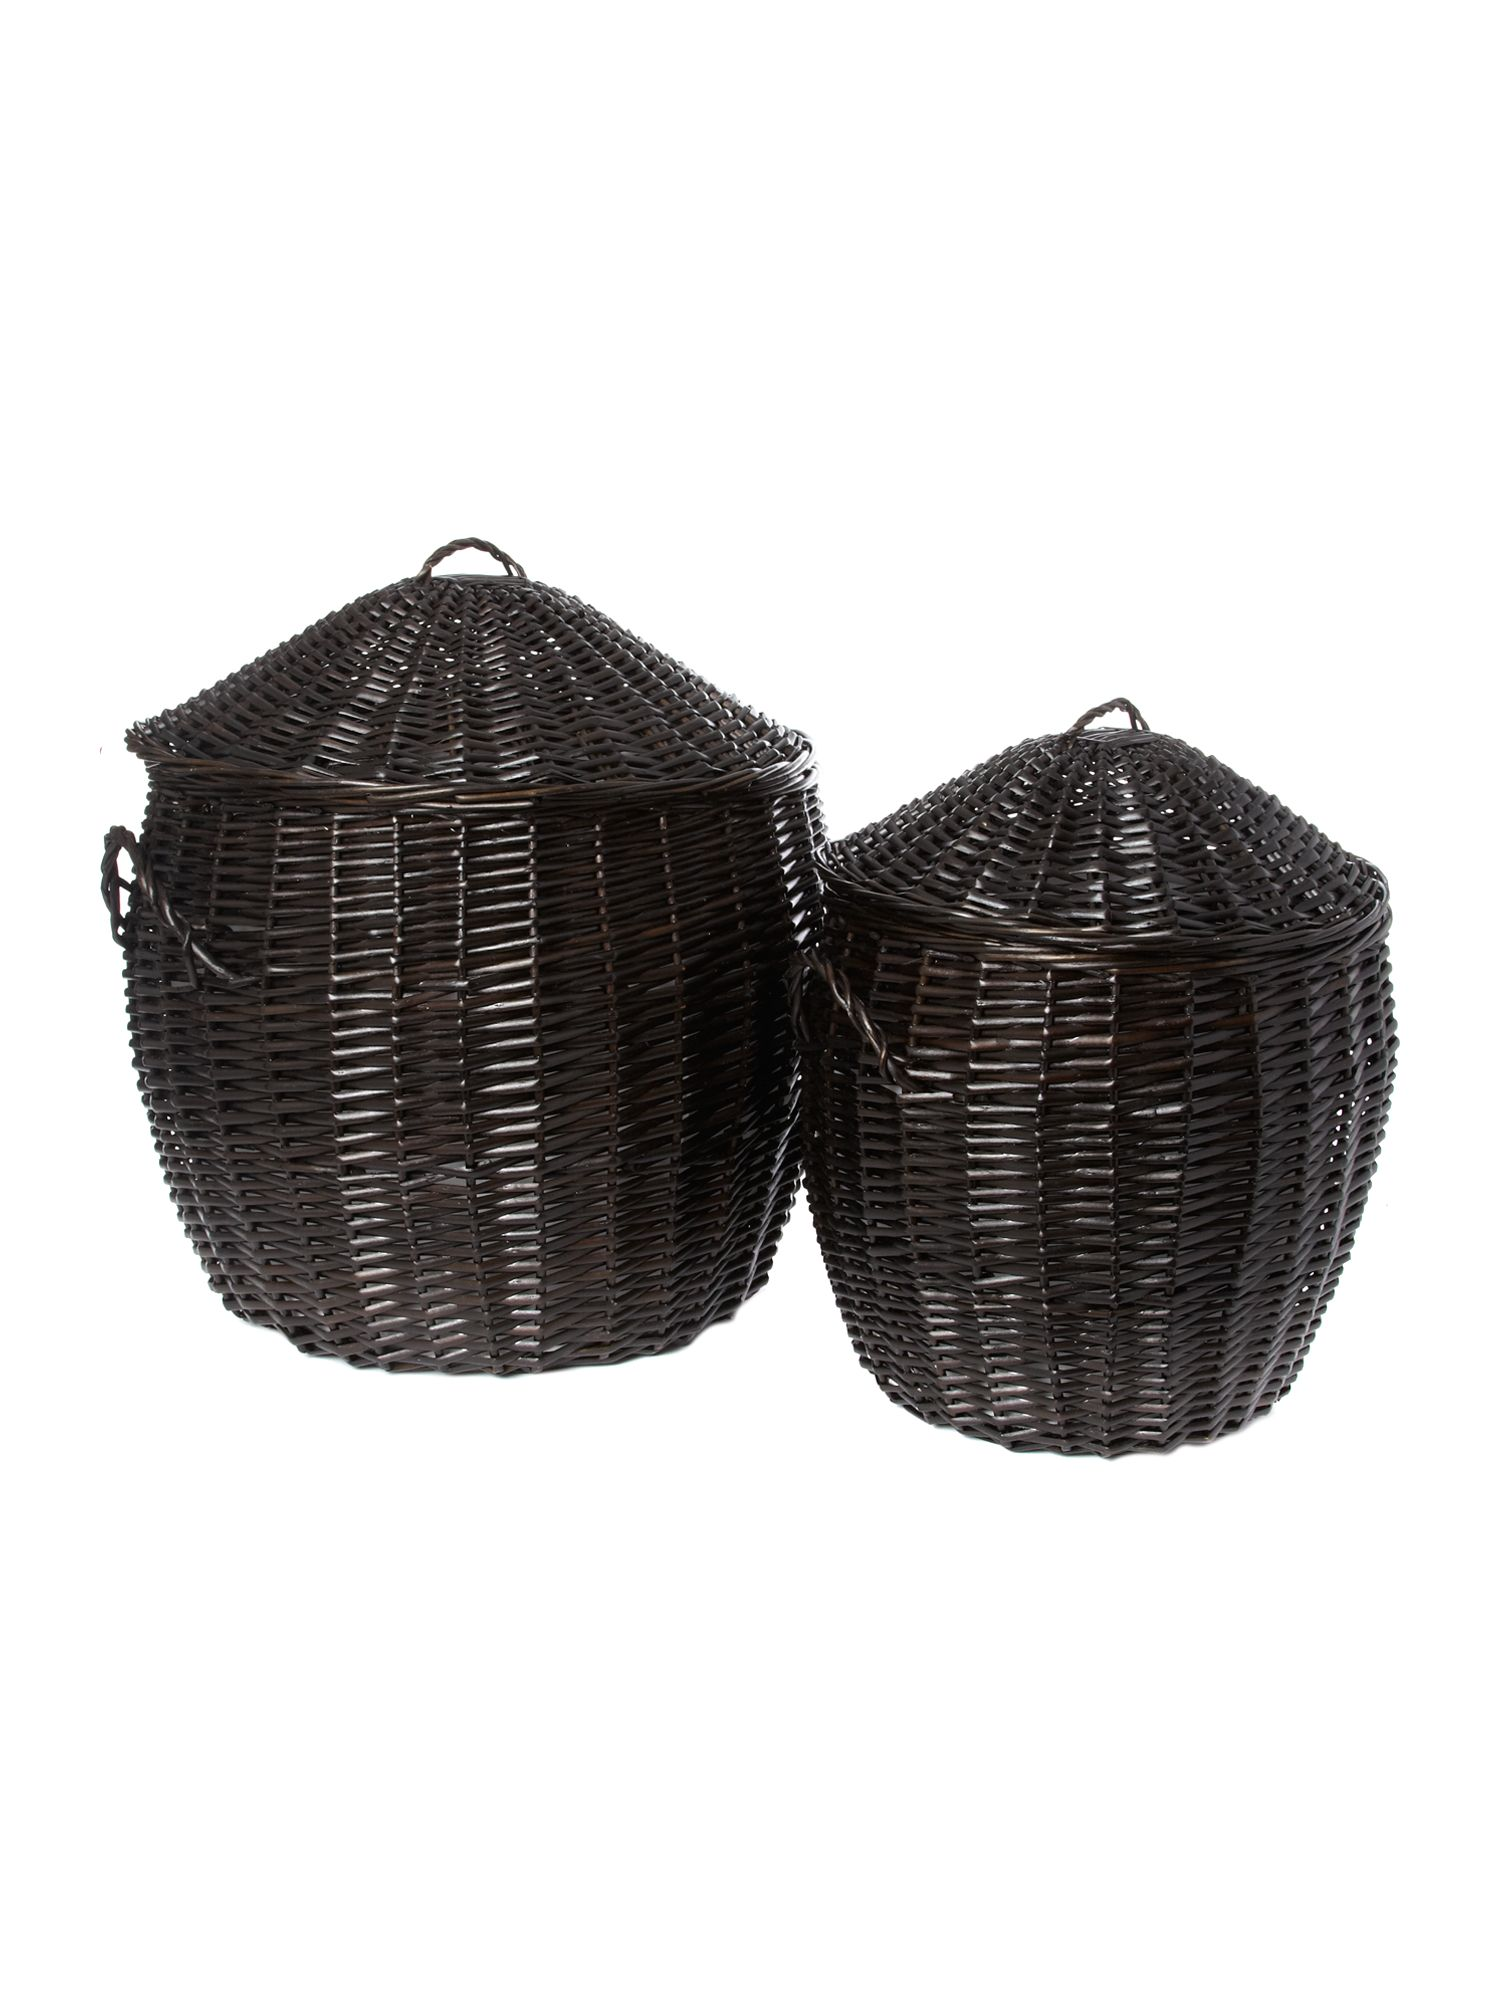 Rounded dark willow laundry baskets